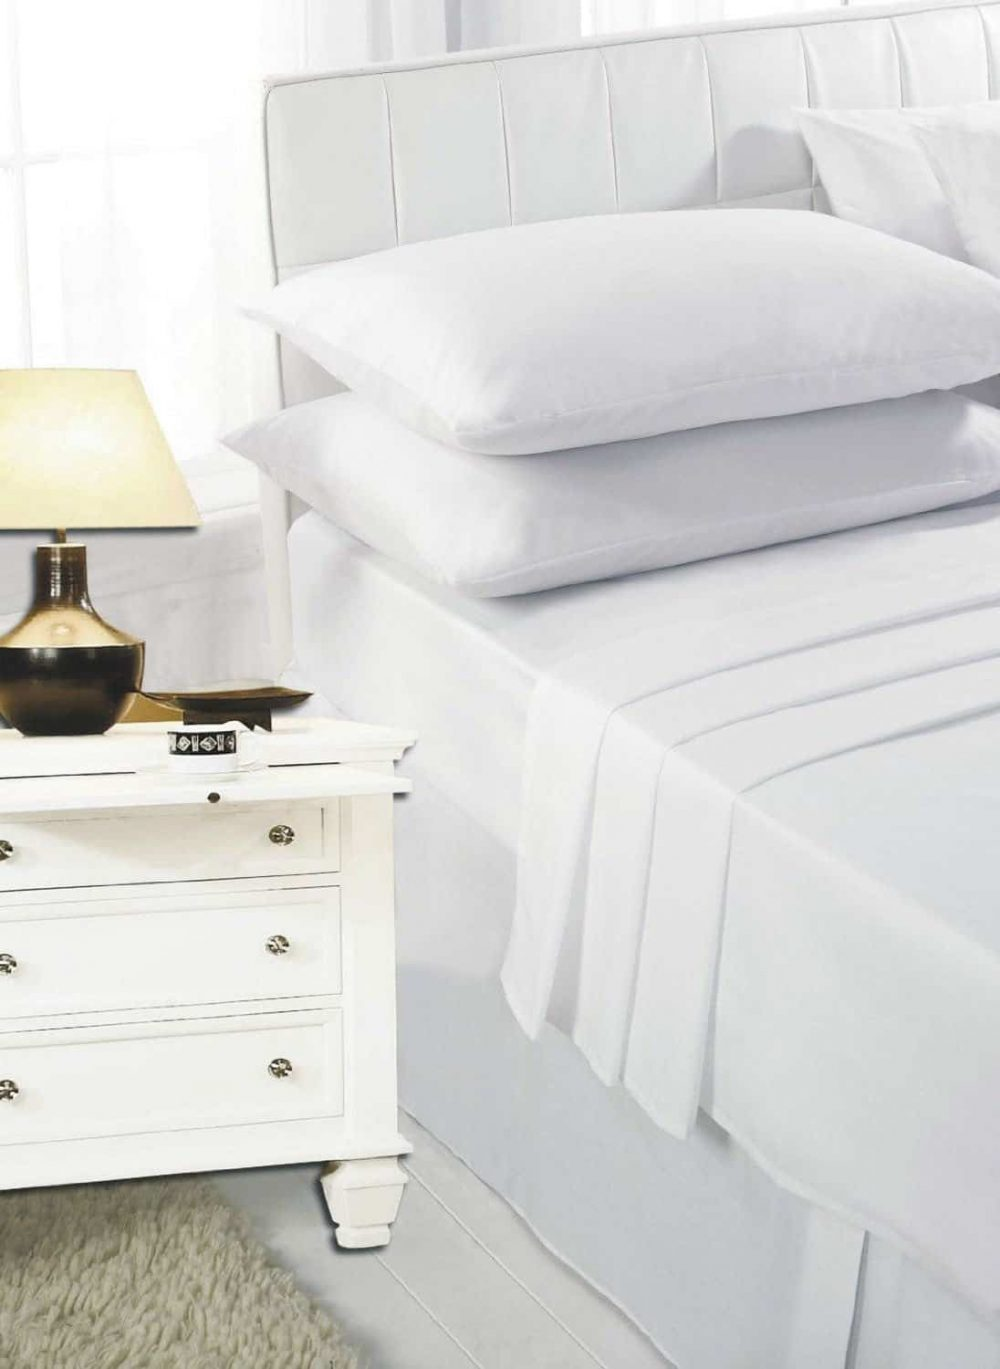 Highliving 100% Egyptian Cotton 200 Thread Count Flat Sheet, White, Cream